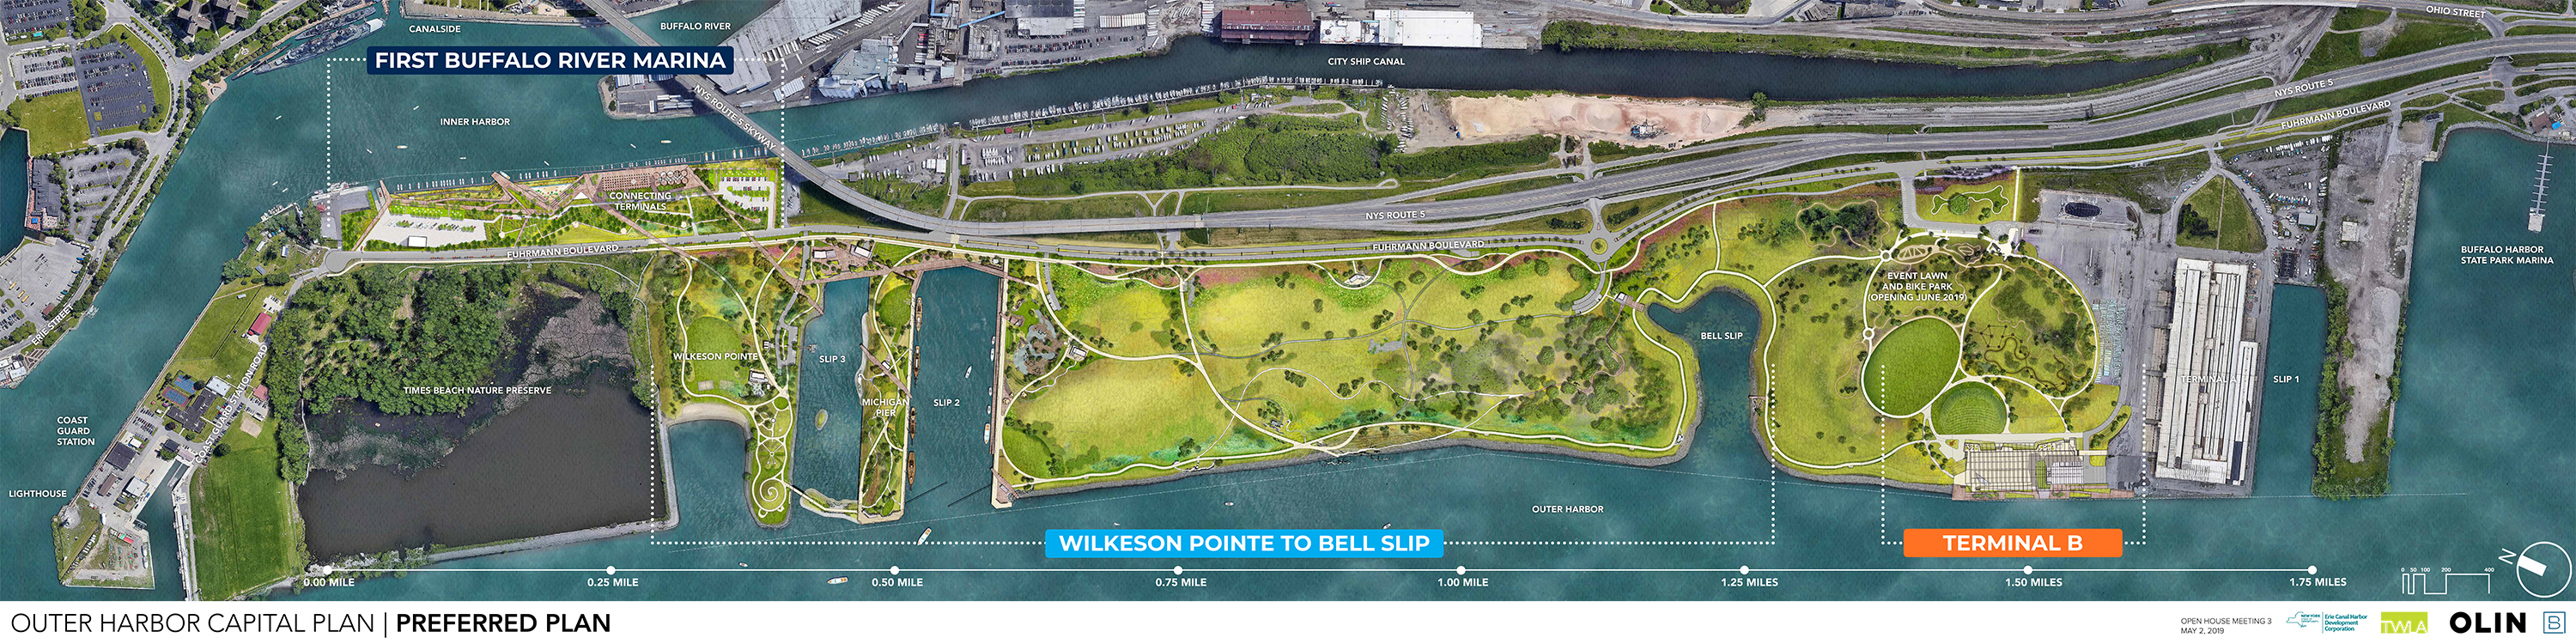 Overall Outer Harbor Preferred Capital Plan